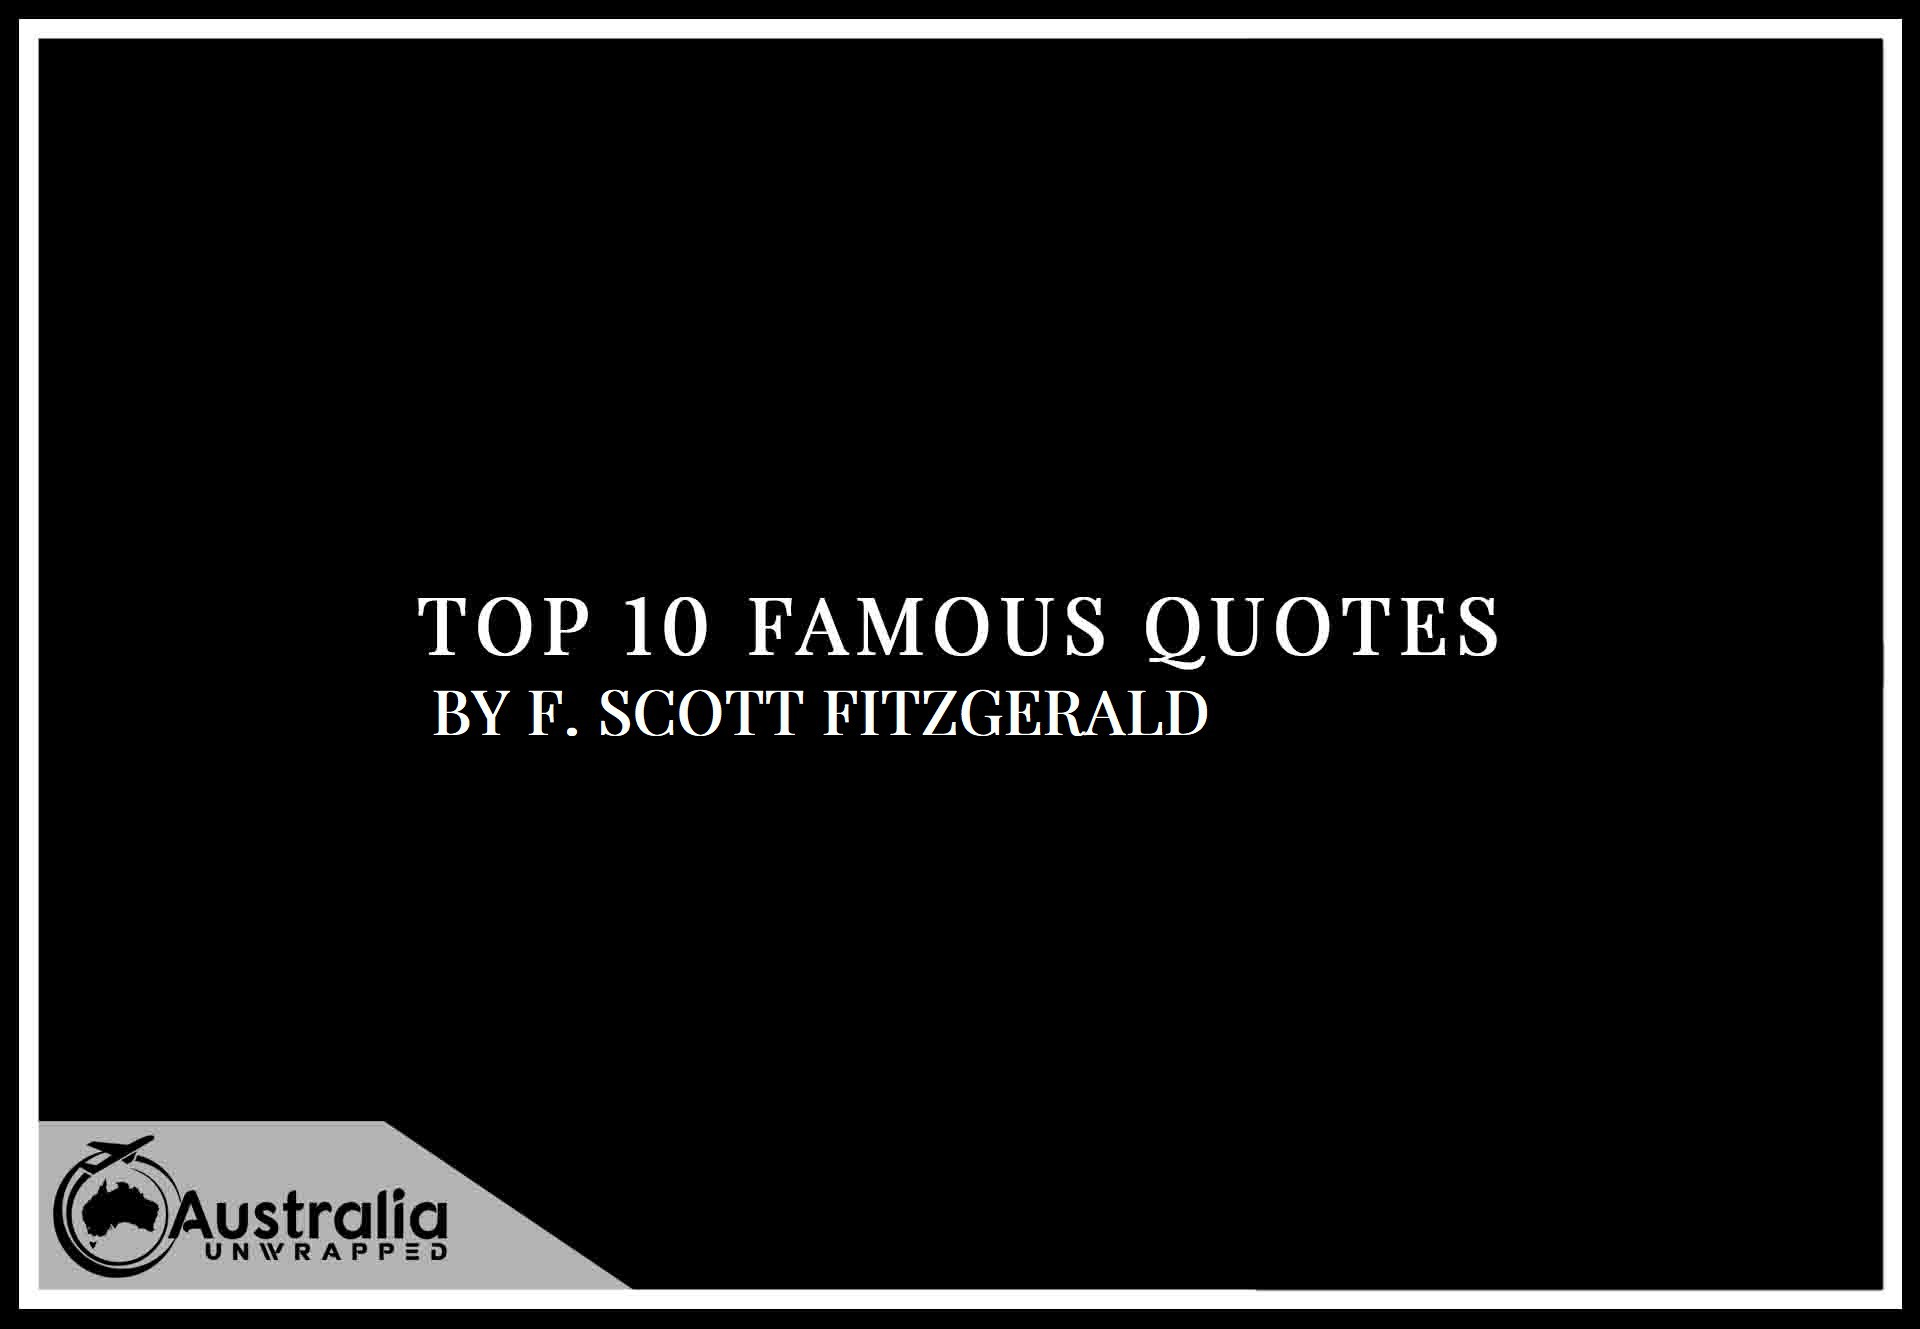 Top 10 Famous Quotes by Author F. Scott Fitzgerald